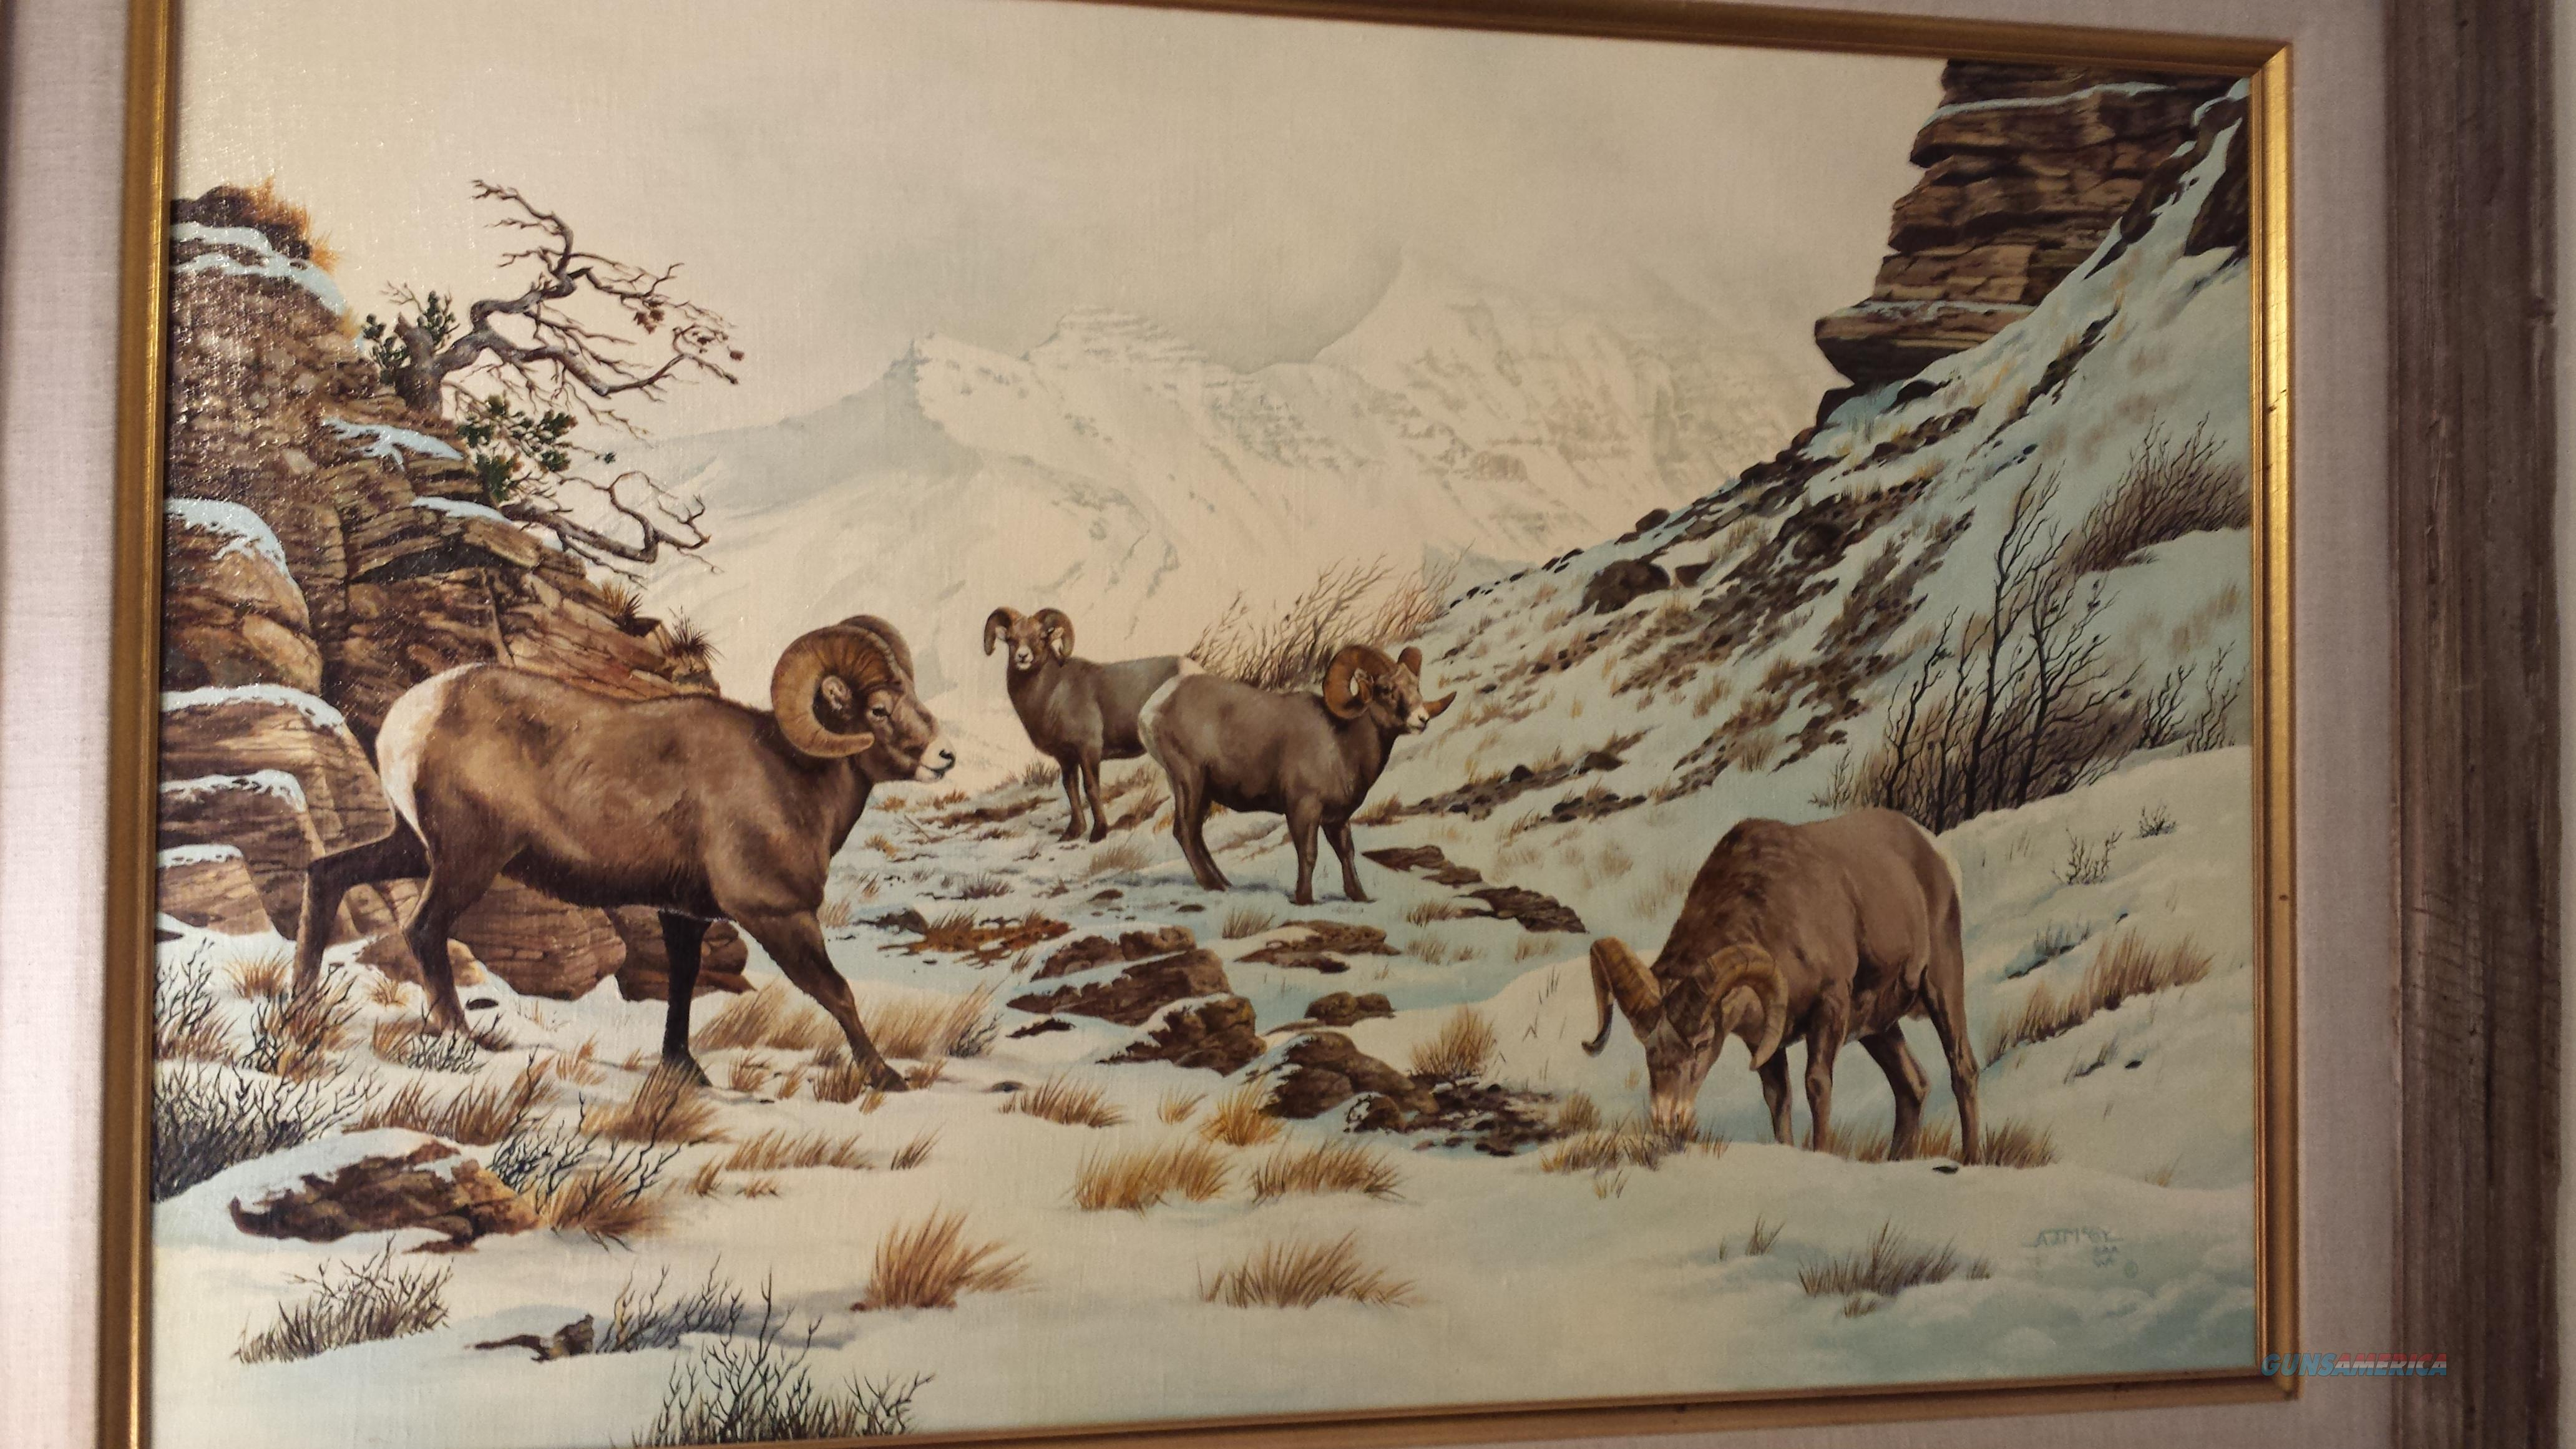 Original Oil Painting by AJ McCoy - Bighorn Sheep in a Snowy Mountain Pass  Non-Guns > Artwork